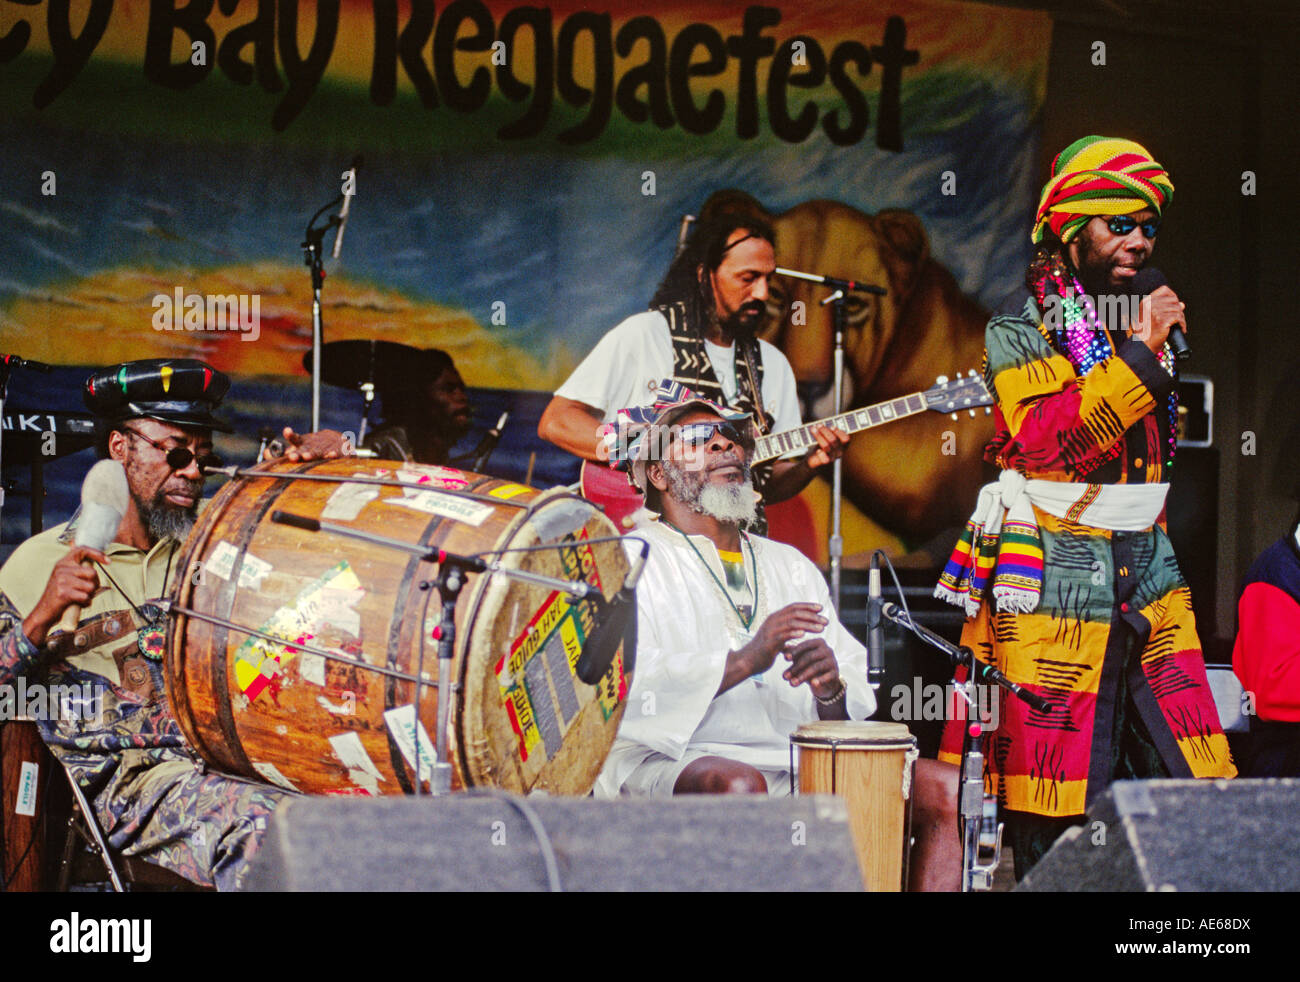 RAS MICHAEL and his BAND play at the MONTEREY BAY REGGAE FESTIVAL CALIFORNIA - Stock Image